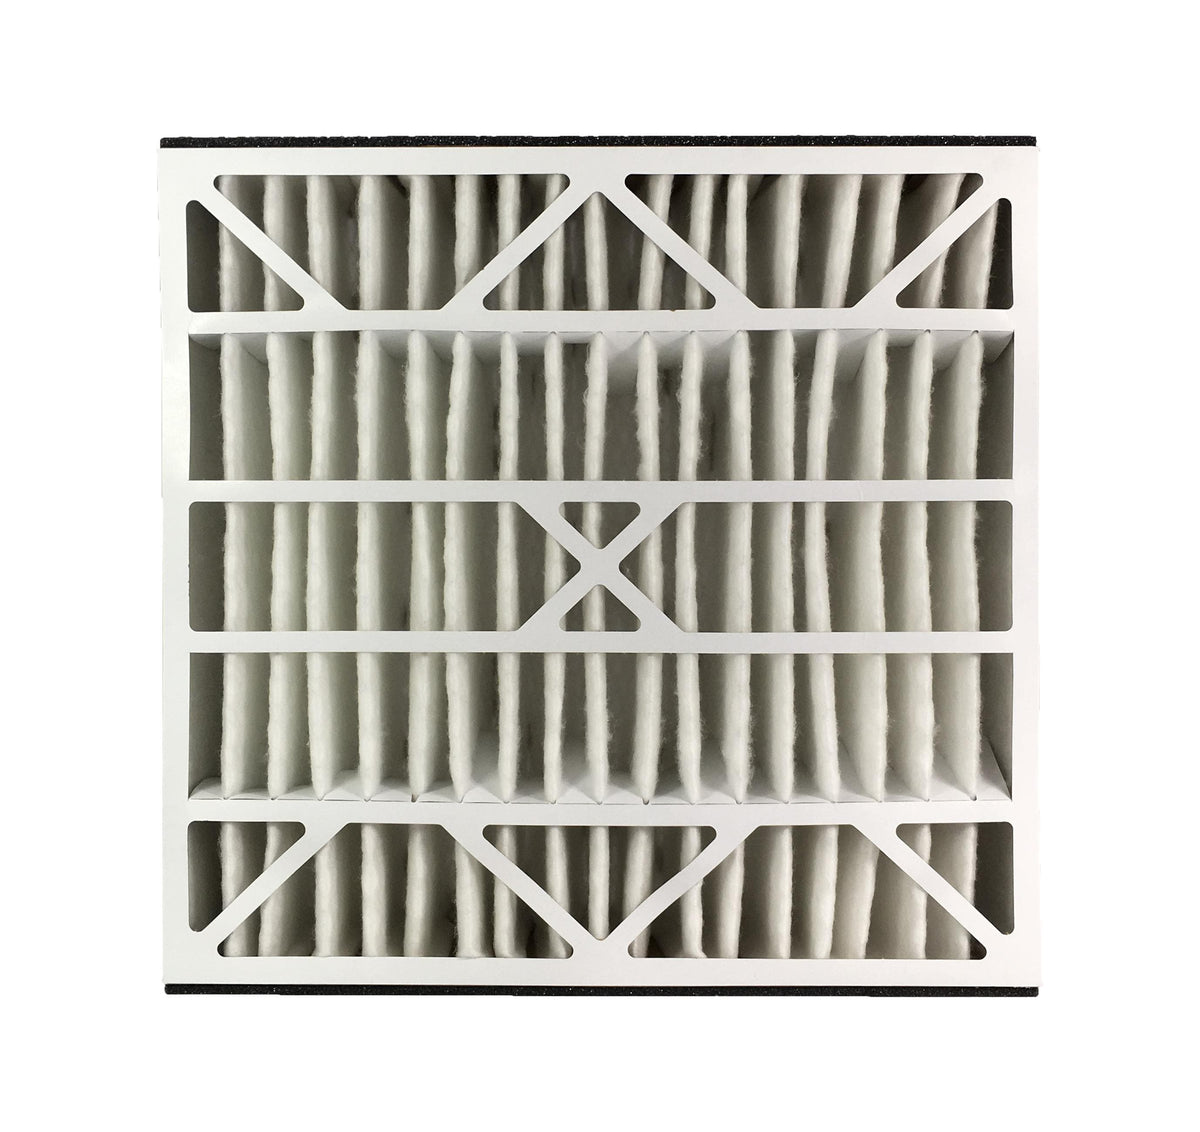 Ultravation 91-028 20x20x5 MERV 13 Replacement Furnace Filter - 1 Pack